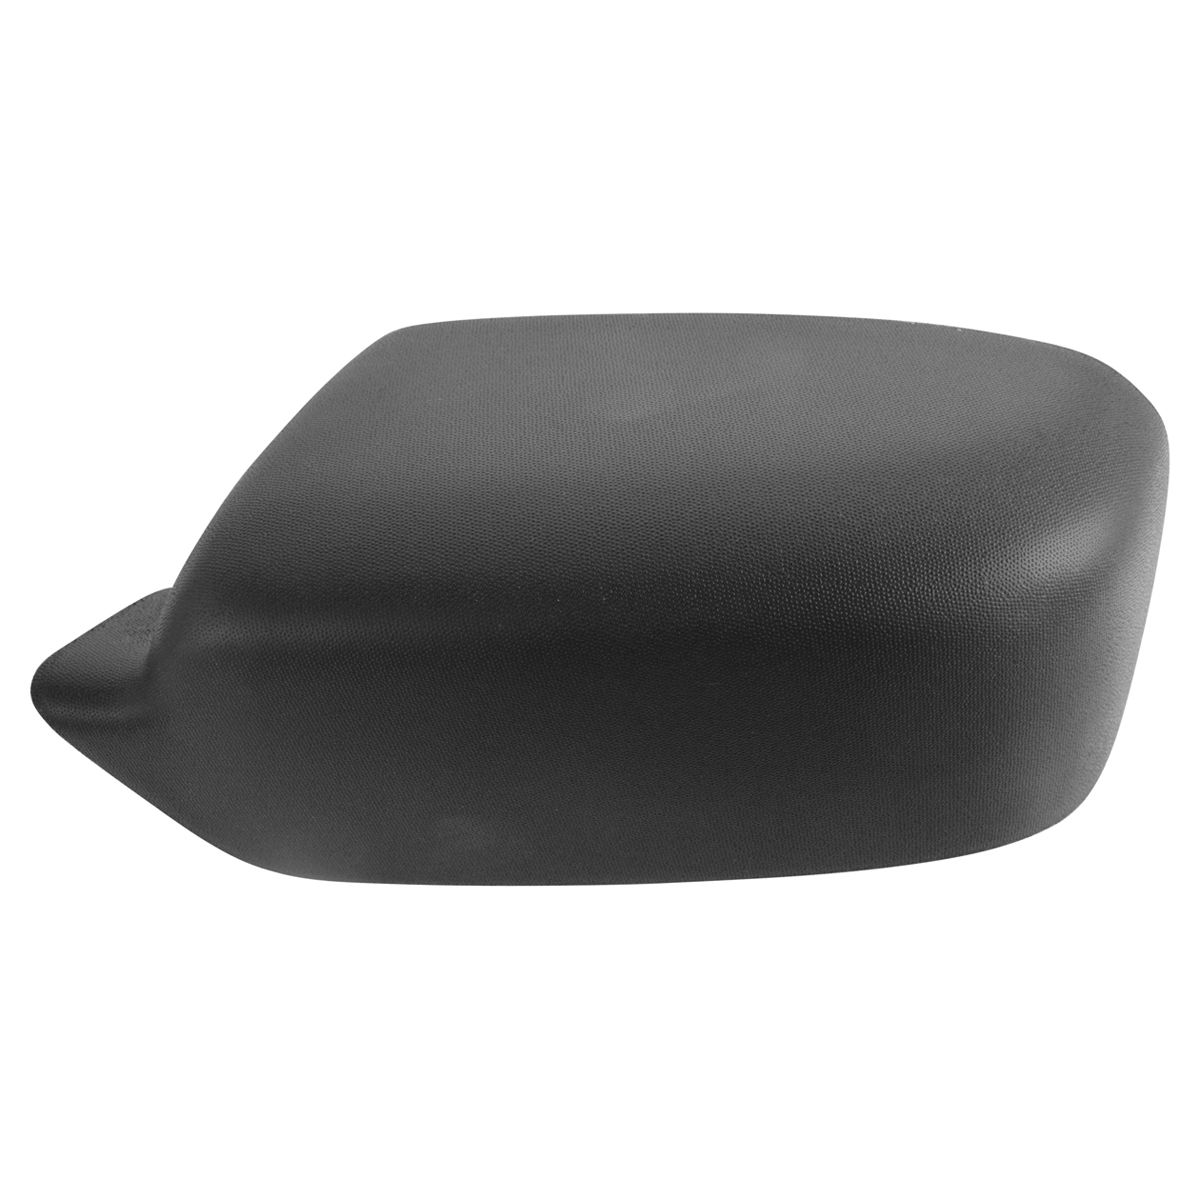 OEM Mirror Cap Cover RH Passenger Side Textured Black for Ford Mercury Lincoln